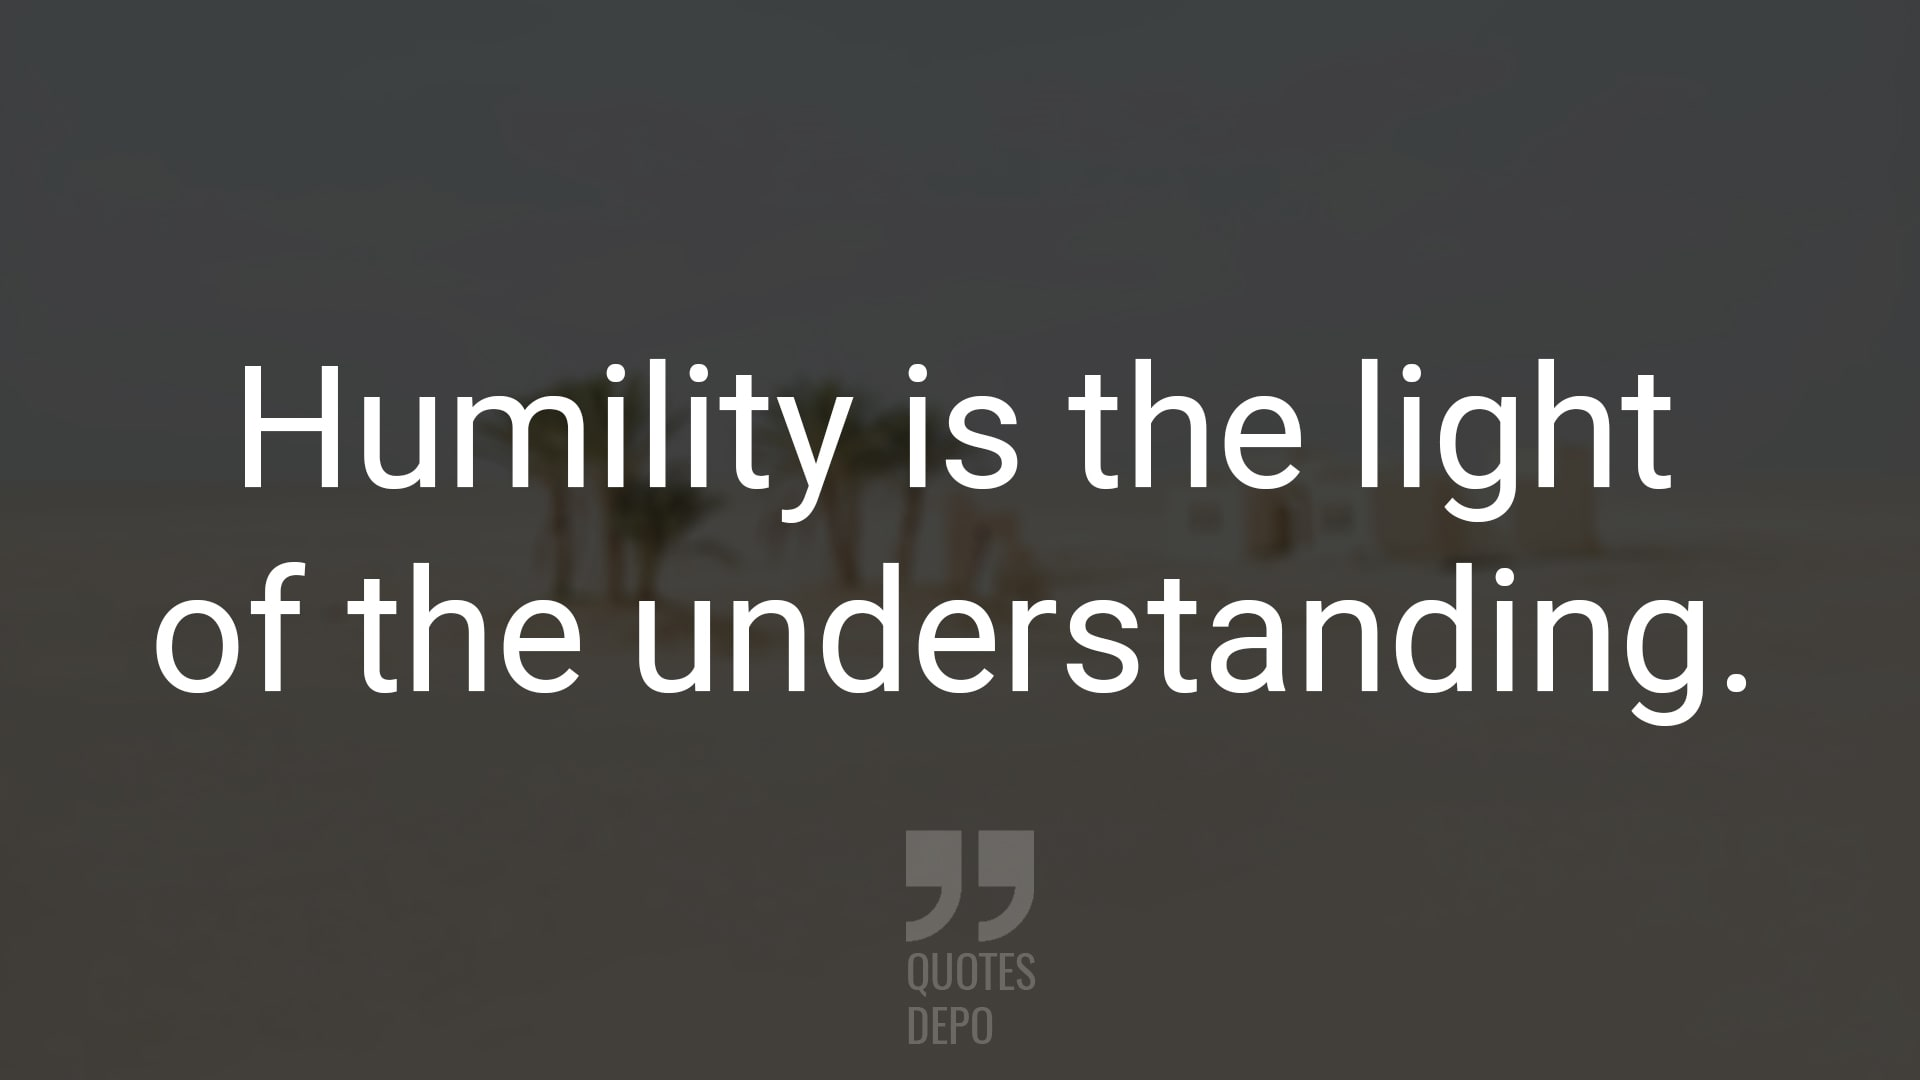 Humility is the Light